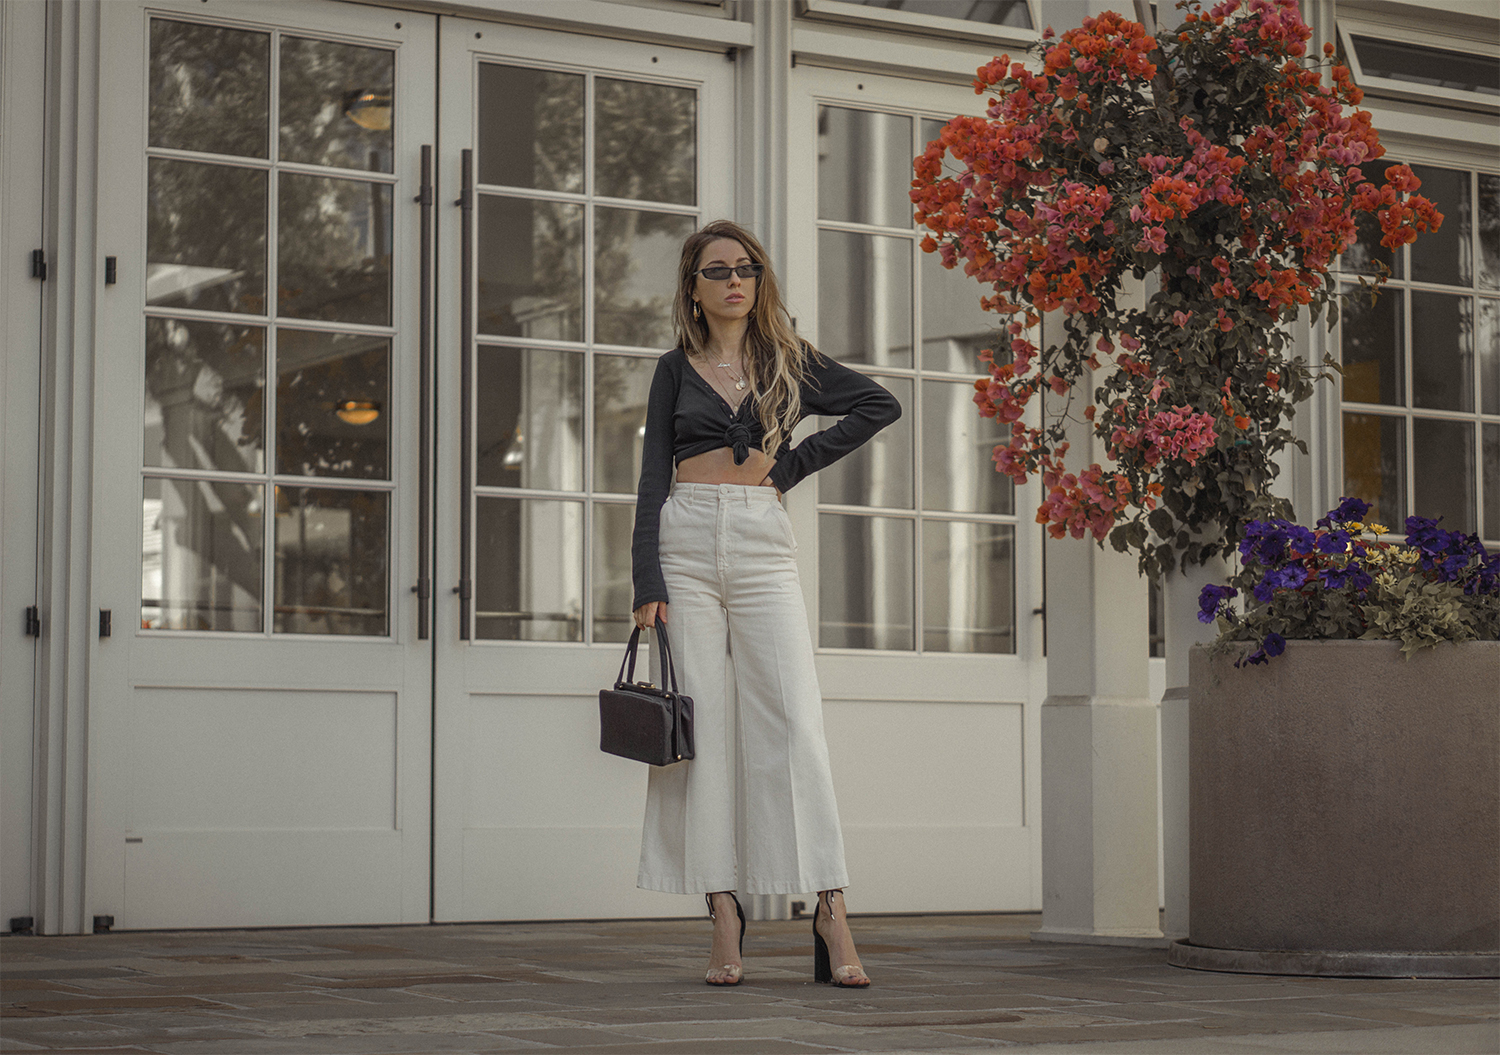 high_waisted_wide_white_jeans_clear_shoes_heels_street_style_outfit_fashion_blogger_vintage_lena_juice_the_white_ocean_03